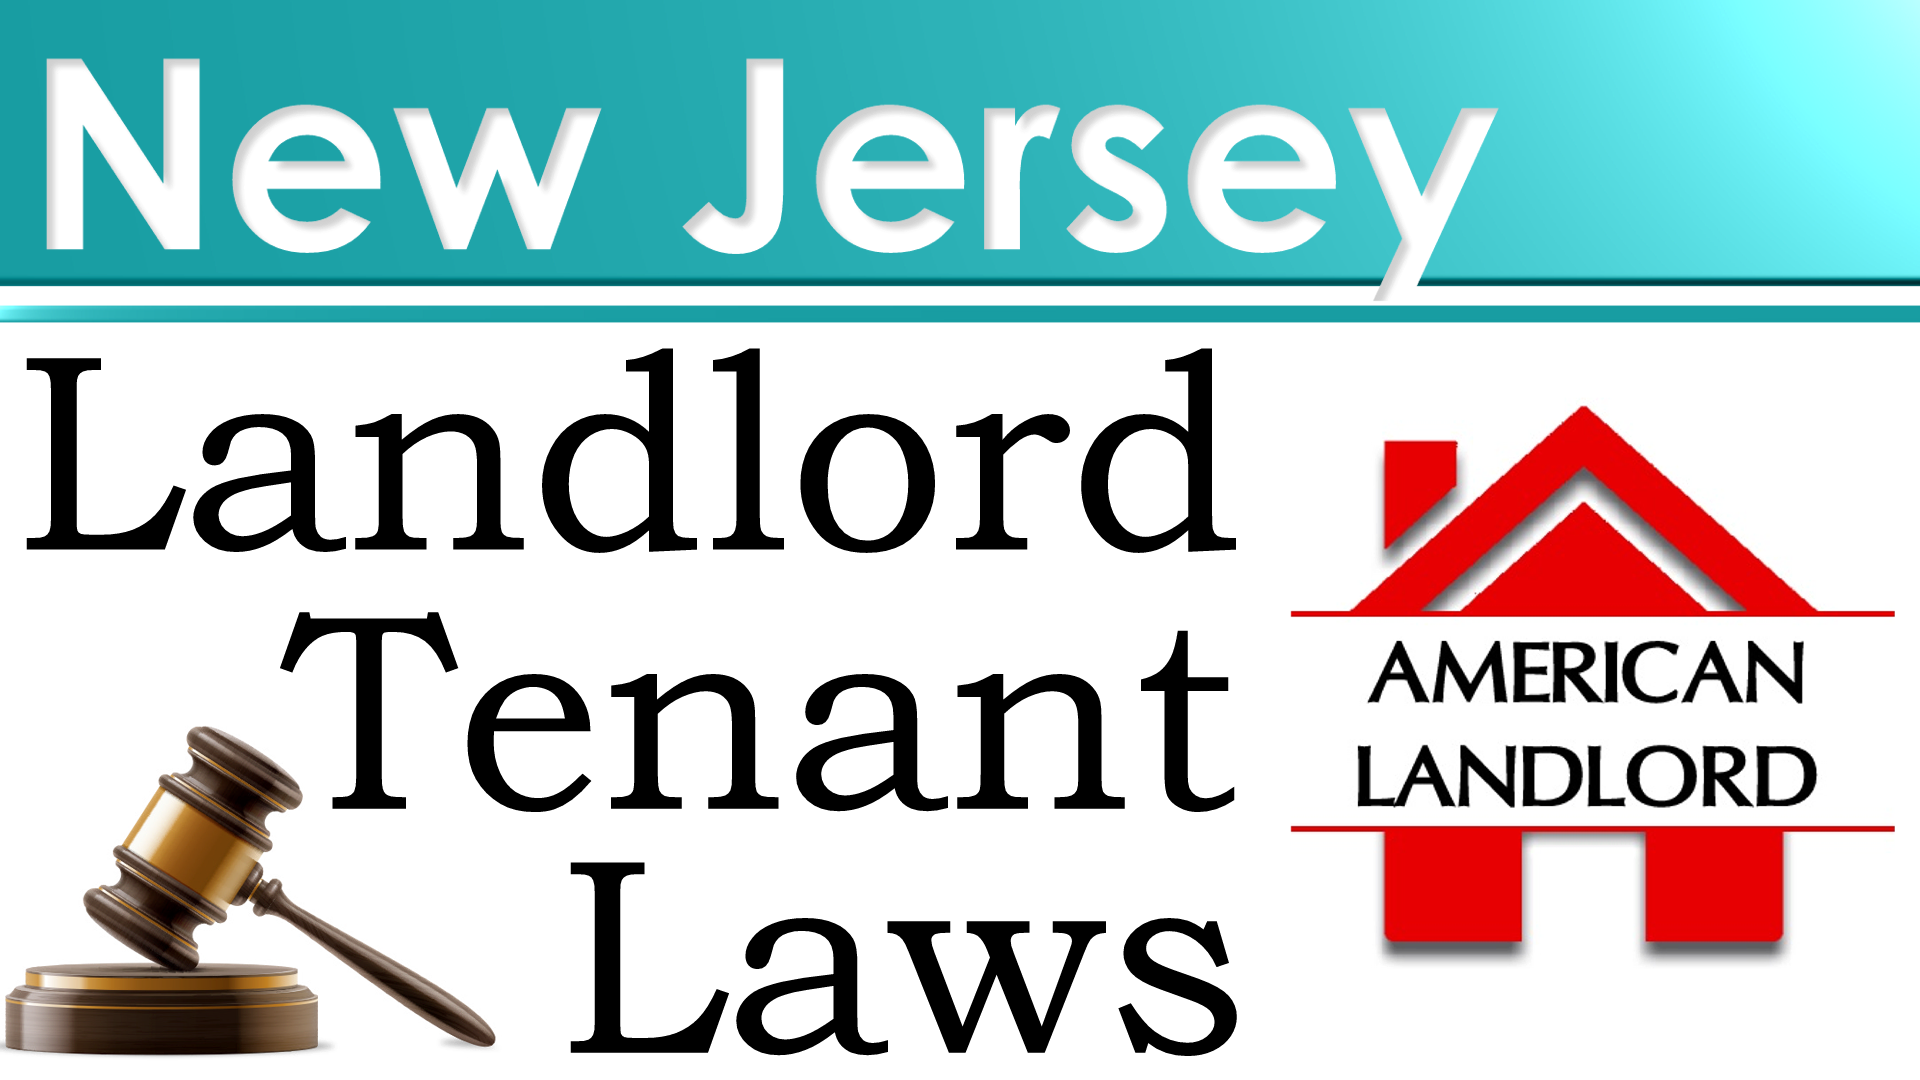 New Jersey Landlord-Tenant Laws - American Landlord